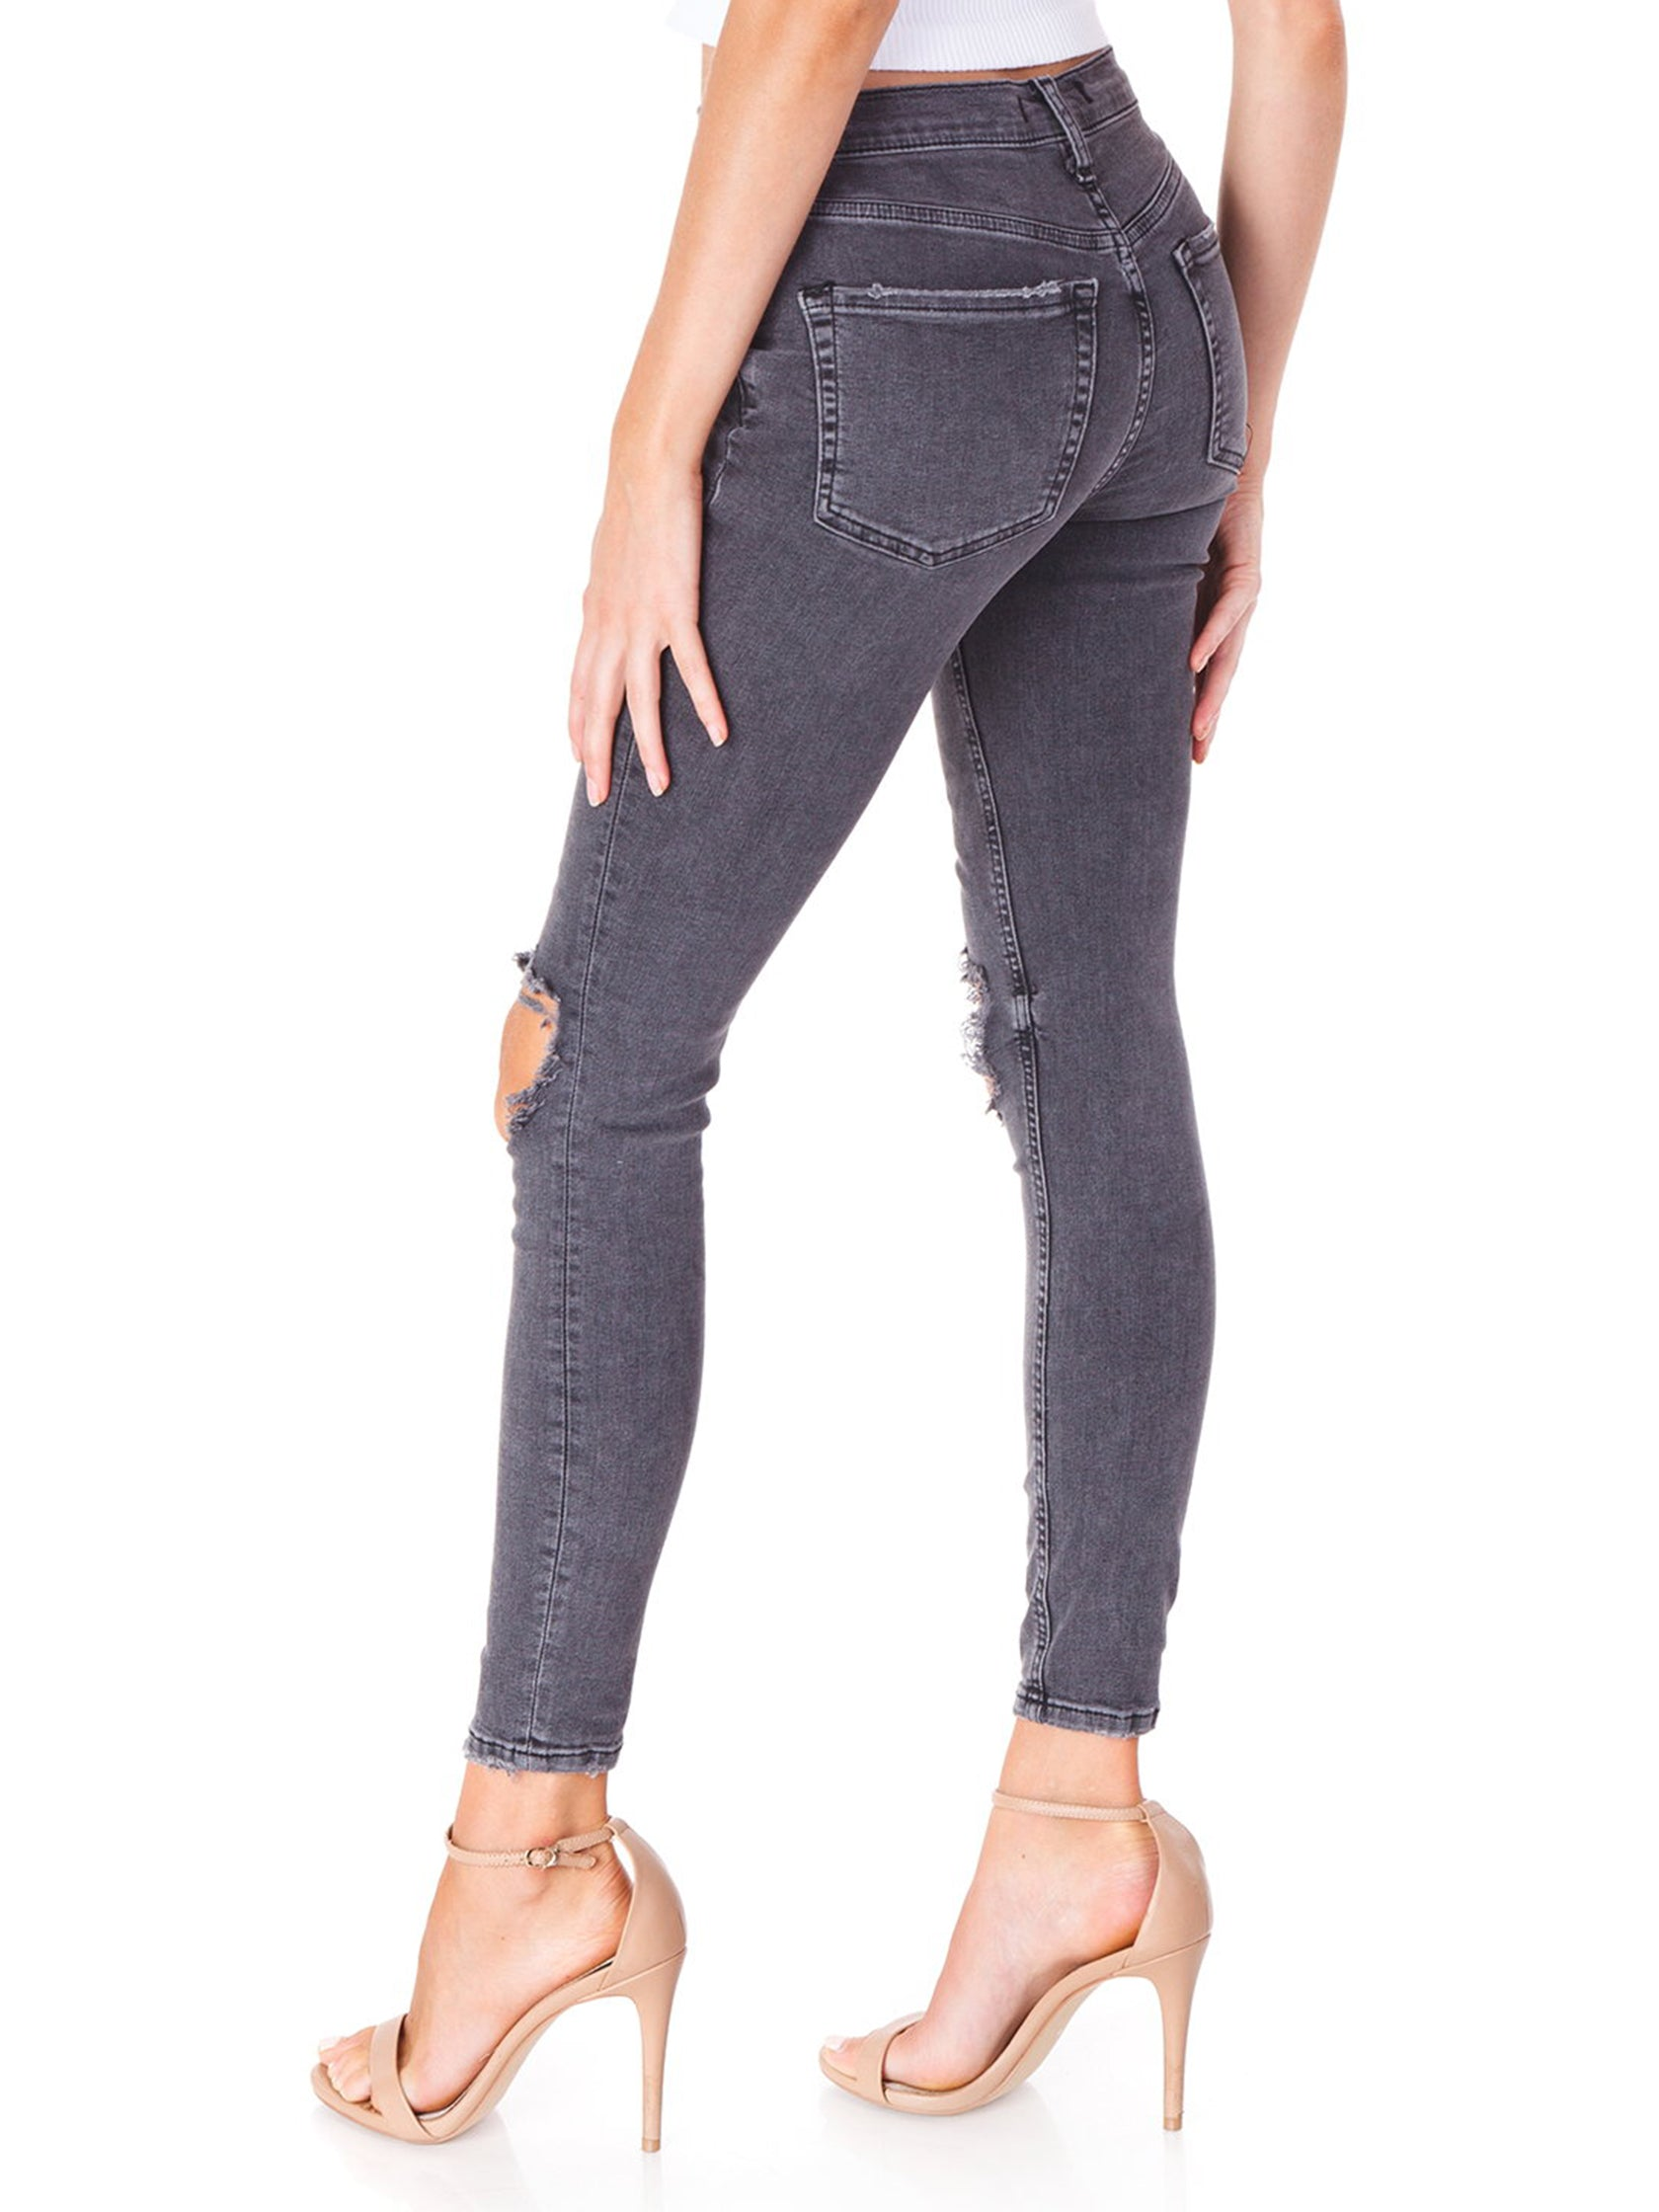 Women outfit in a denim rental from Free People called Busted Knee Skinny Jeans